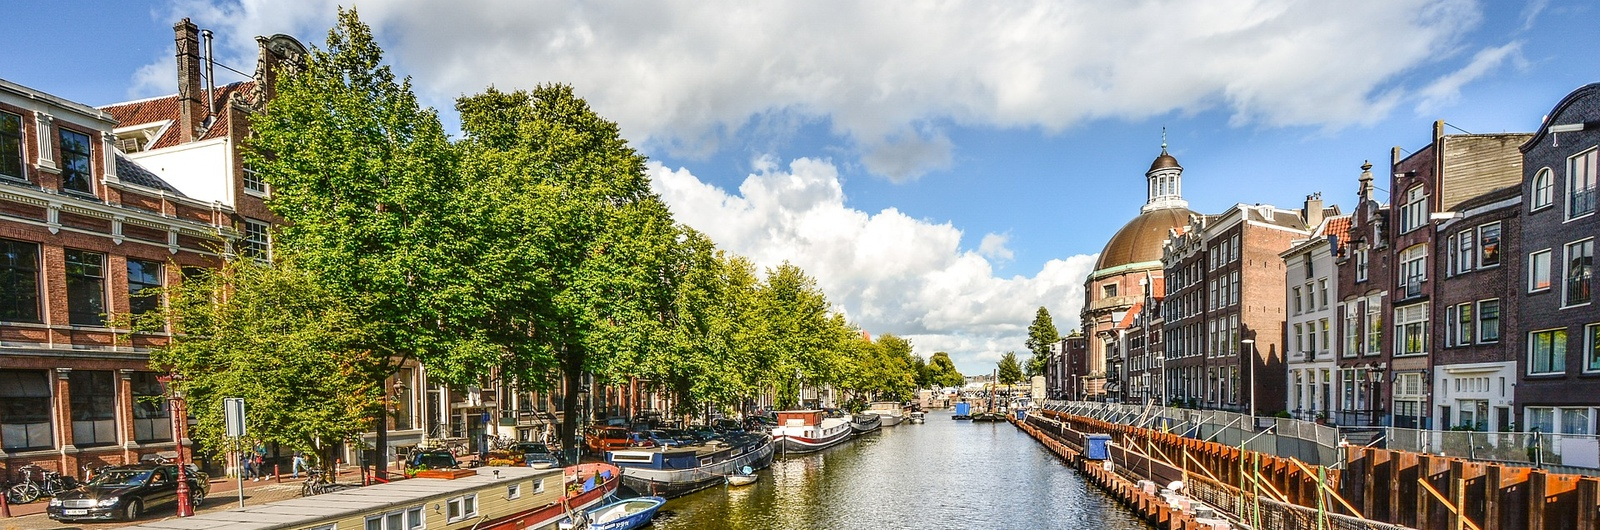 amsterdam city header